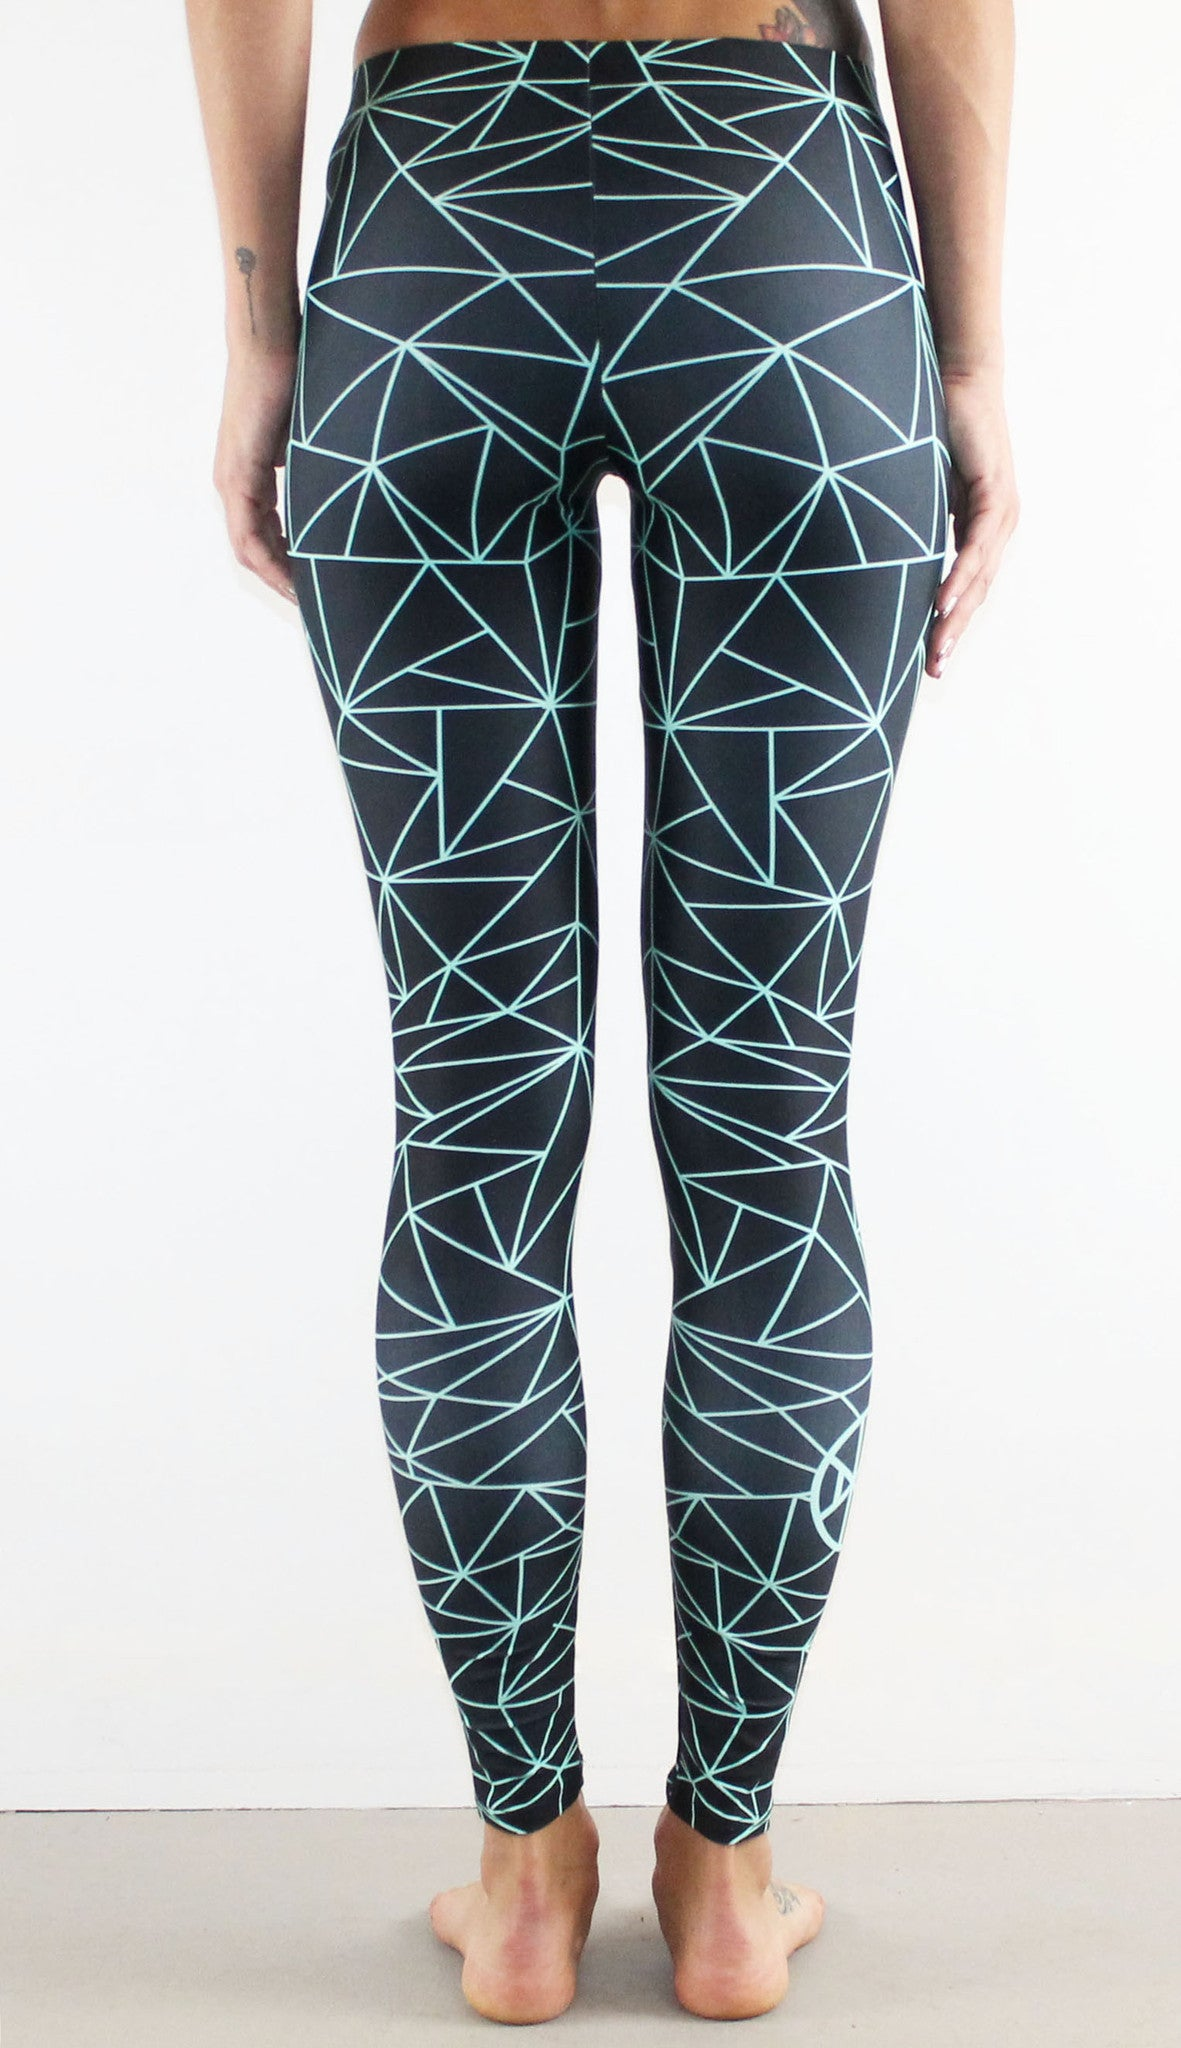 Fractal Leggings // Mint on Black